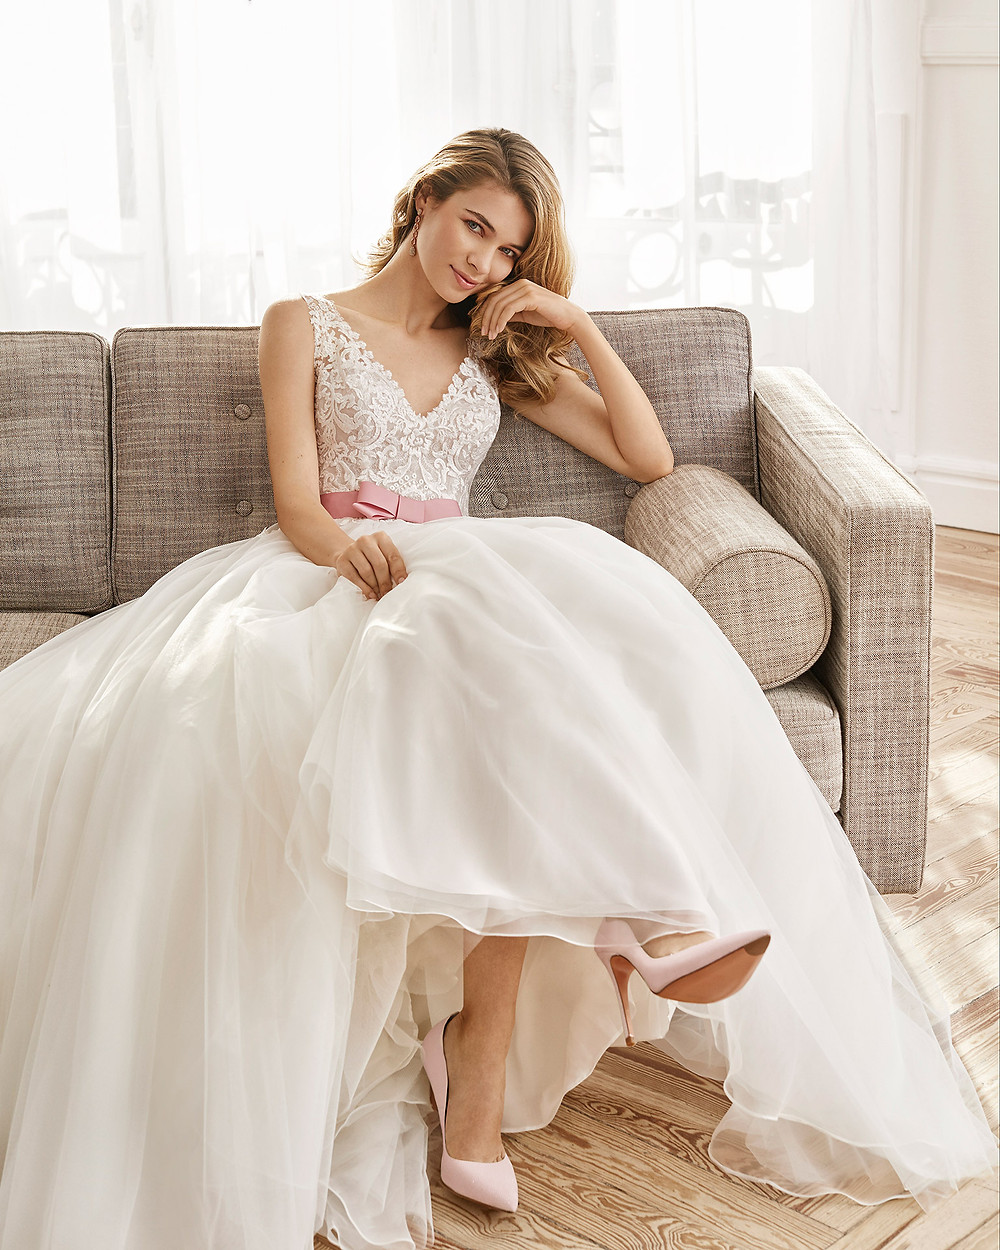 An Aire Barcelona 2020 lace and chiffon ball gown wedding dress with a pink bow